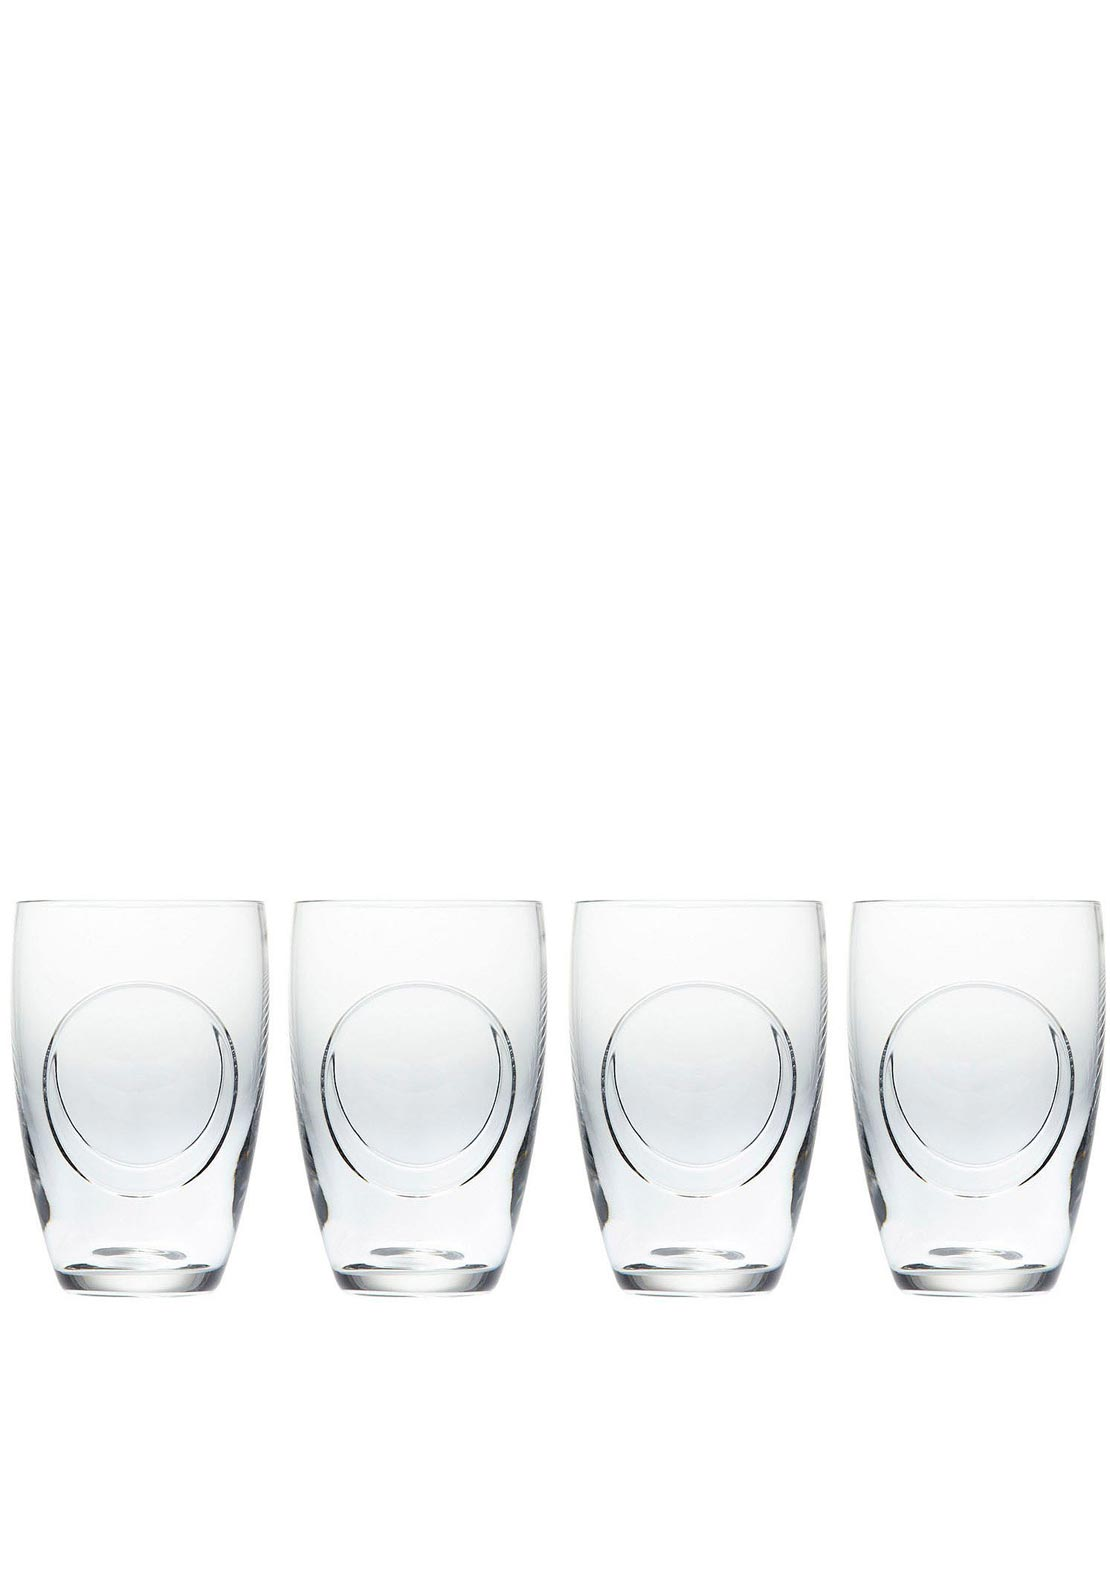 John Rocha at Waterford Circa Tumbler Glasses, Set of 4